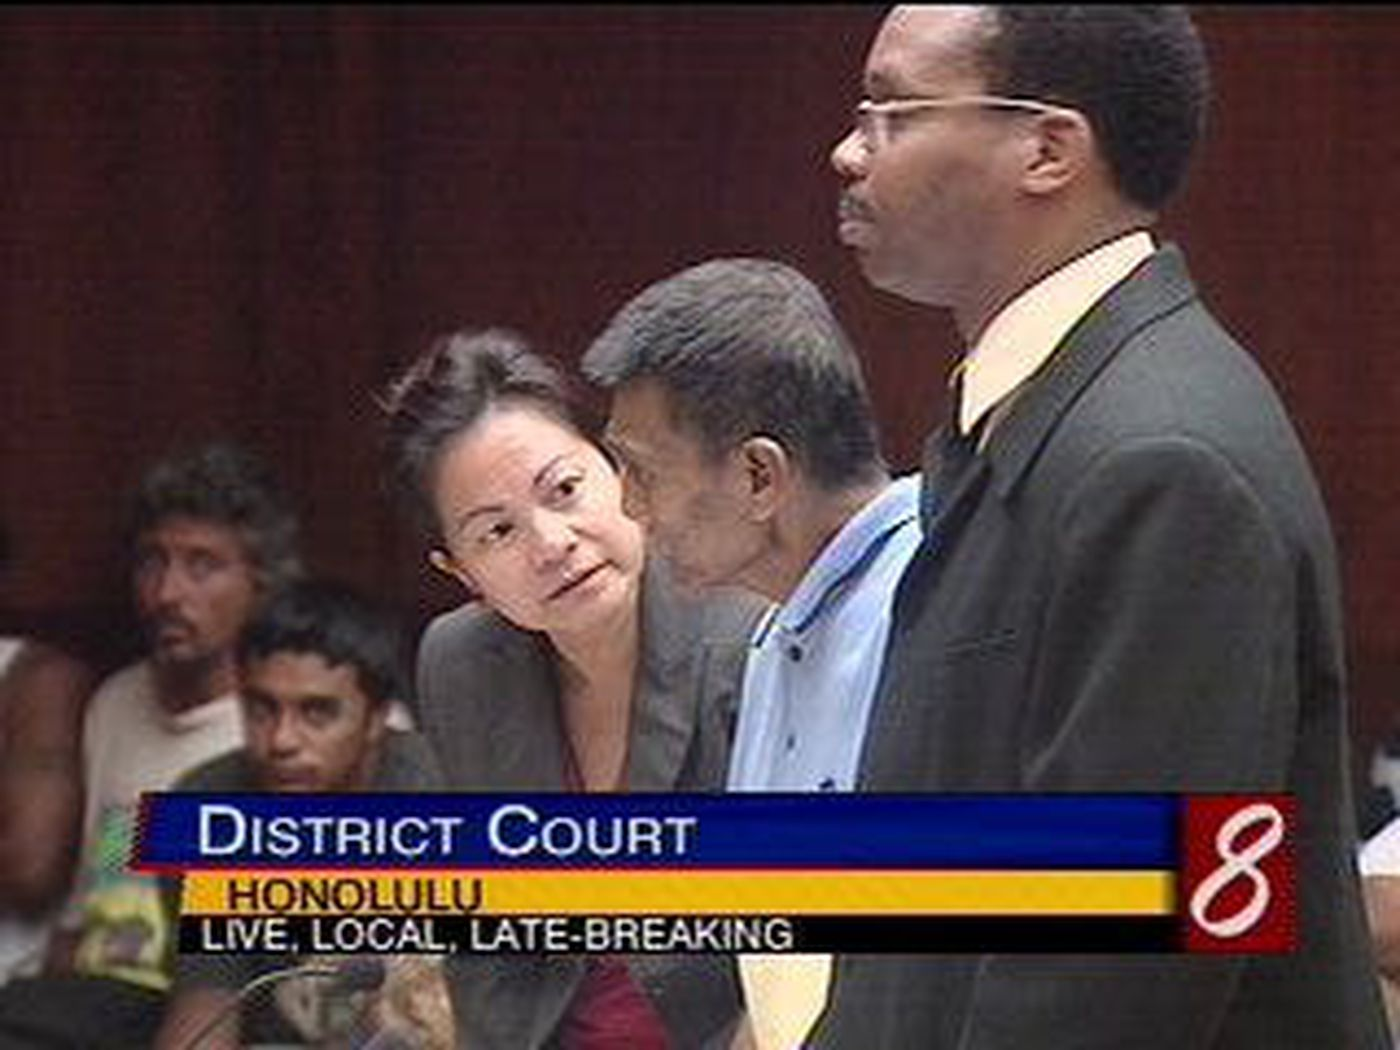 Kalihi Man Accused of Killing His Wife Appears in Court 1400x1050